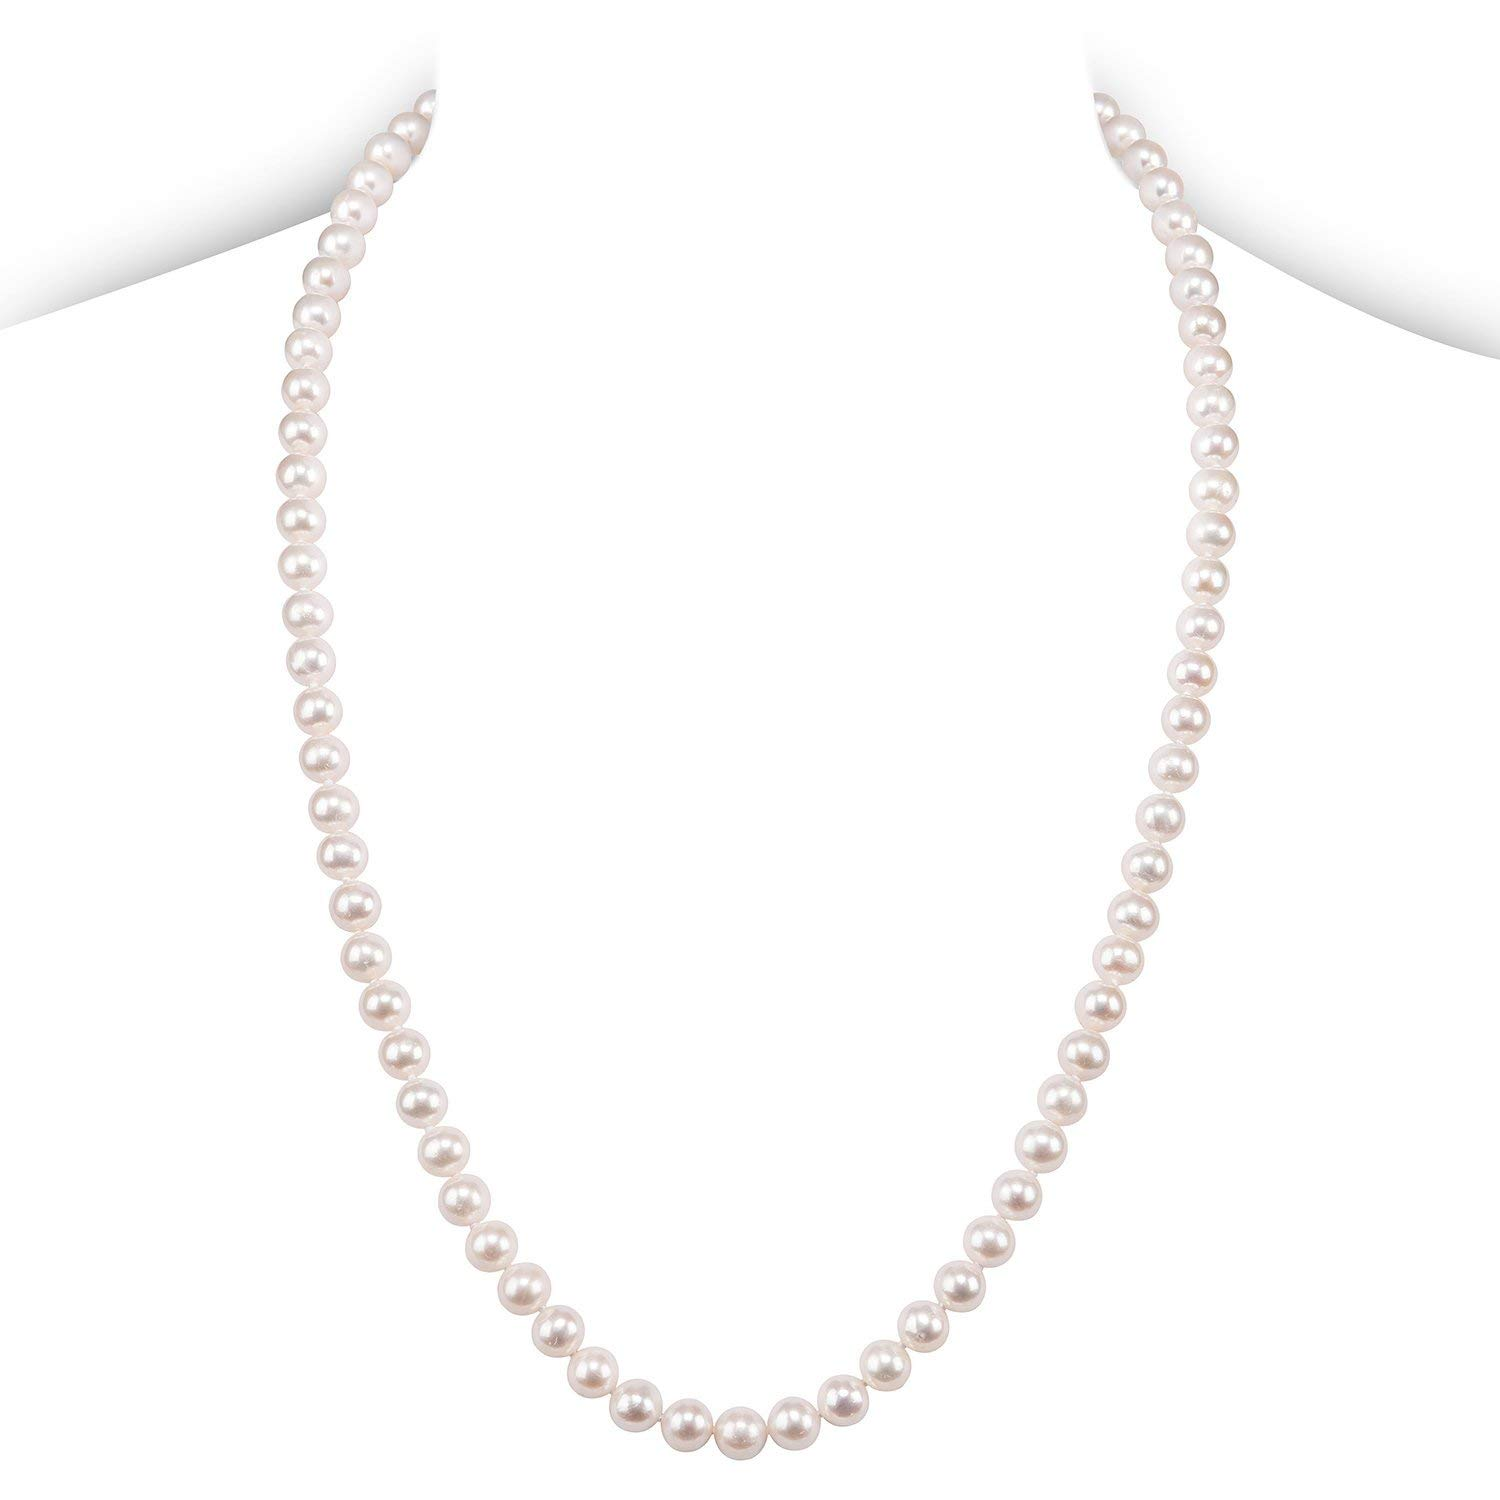 PAVOI Sterling Silver White Freshwater Cultured Pearl Necklace (24, 7mm)